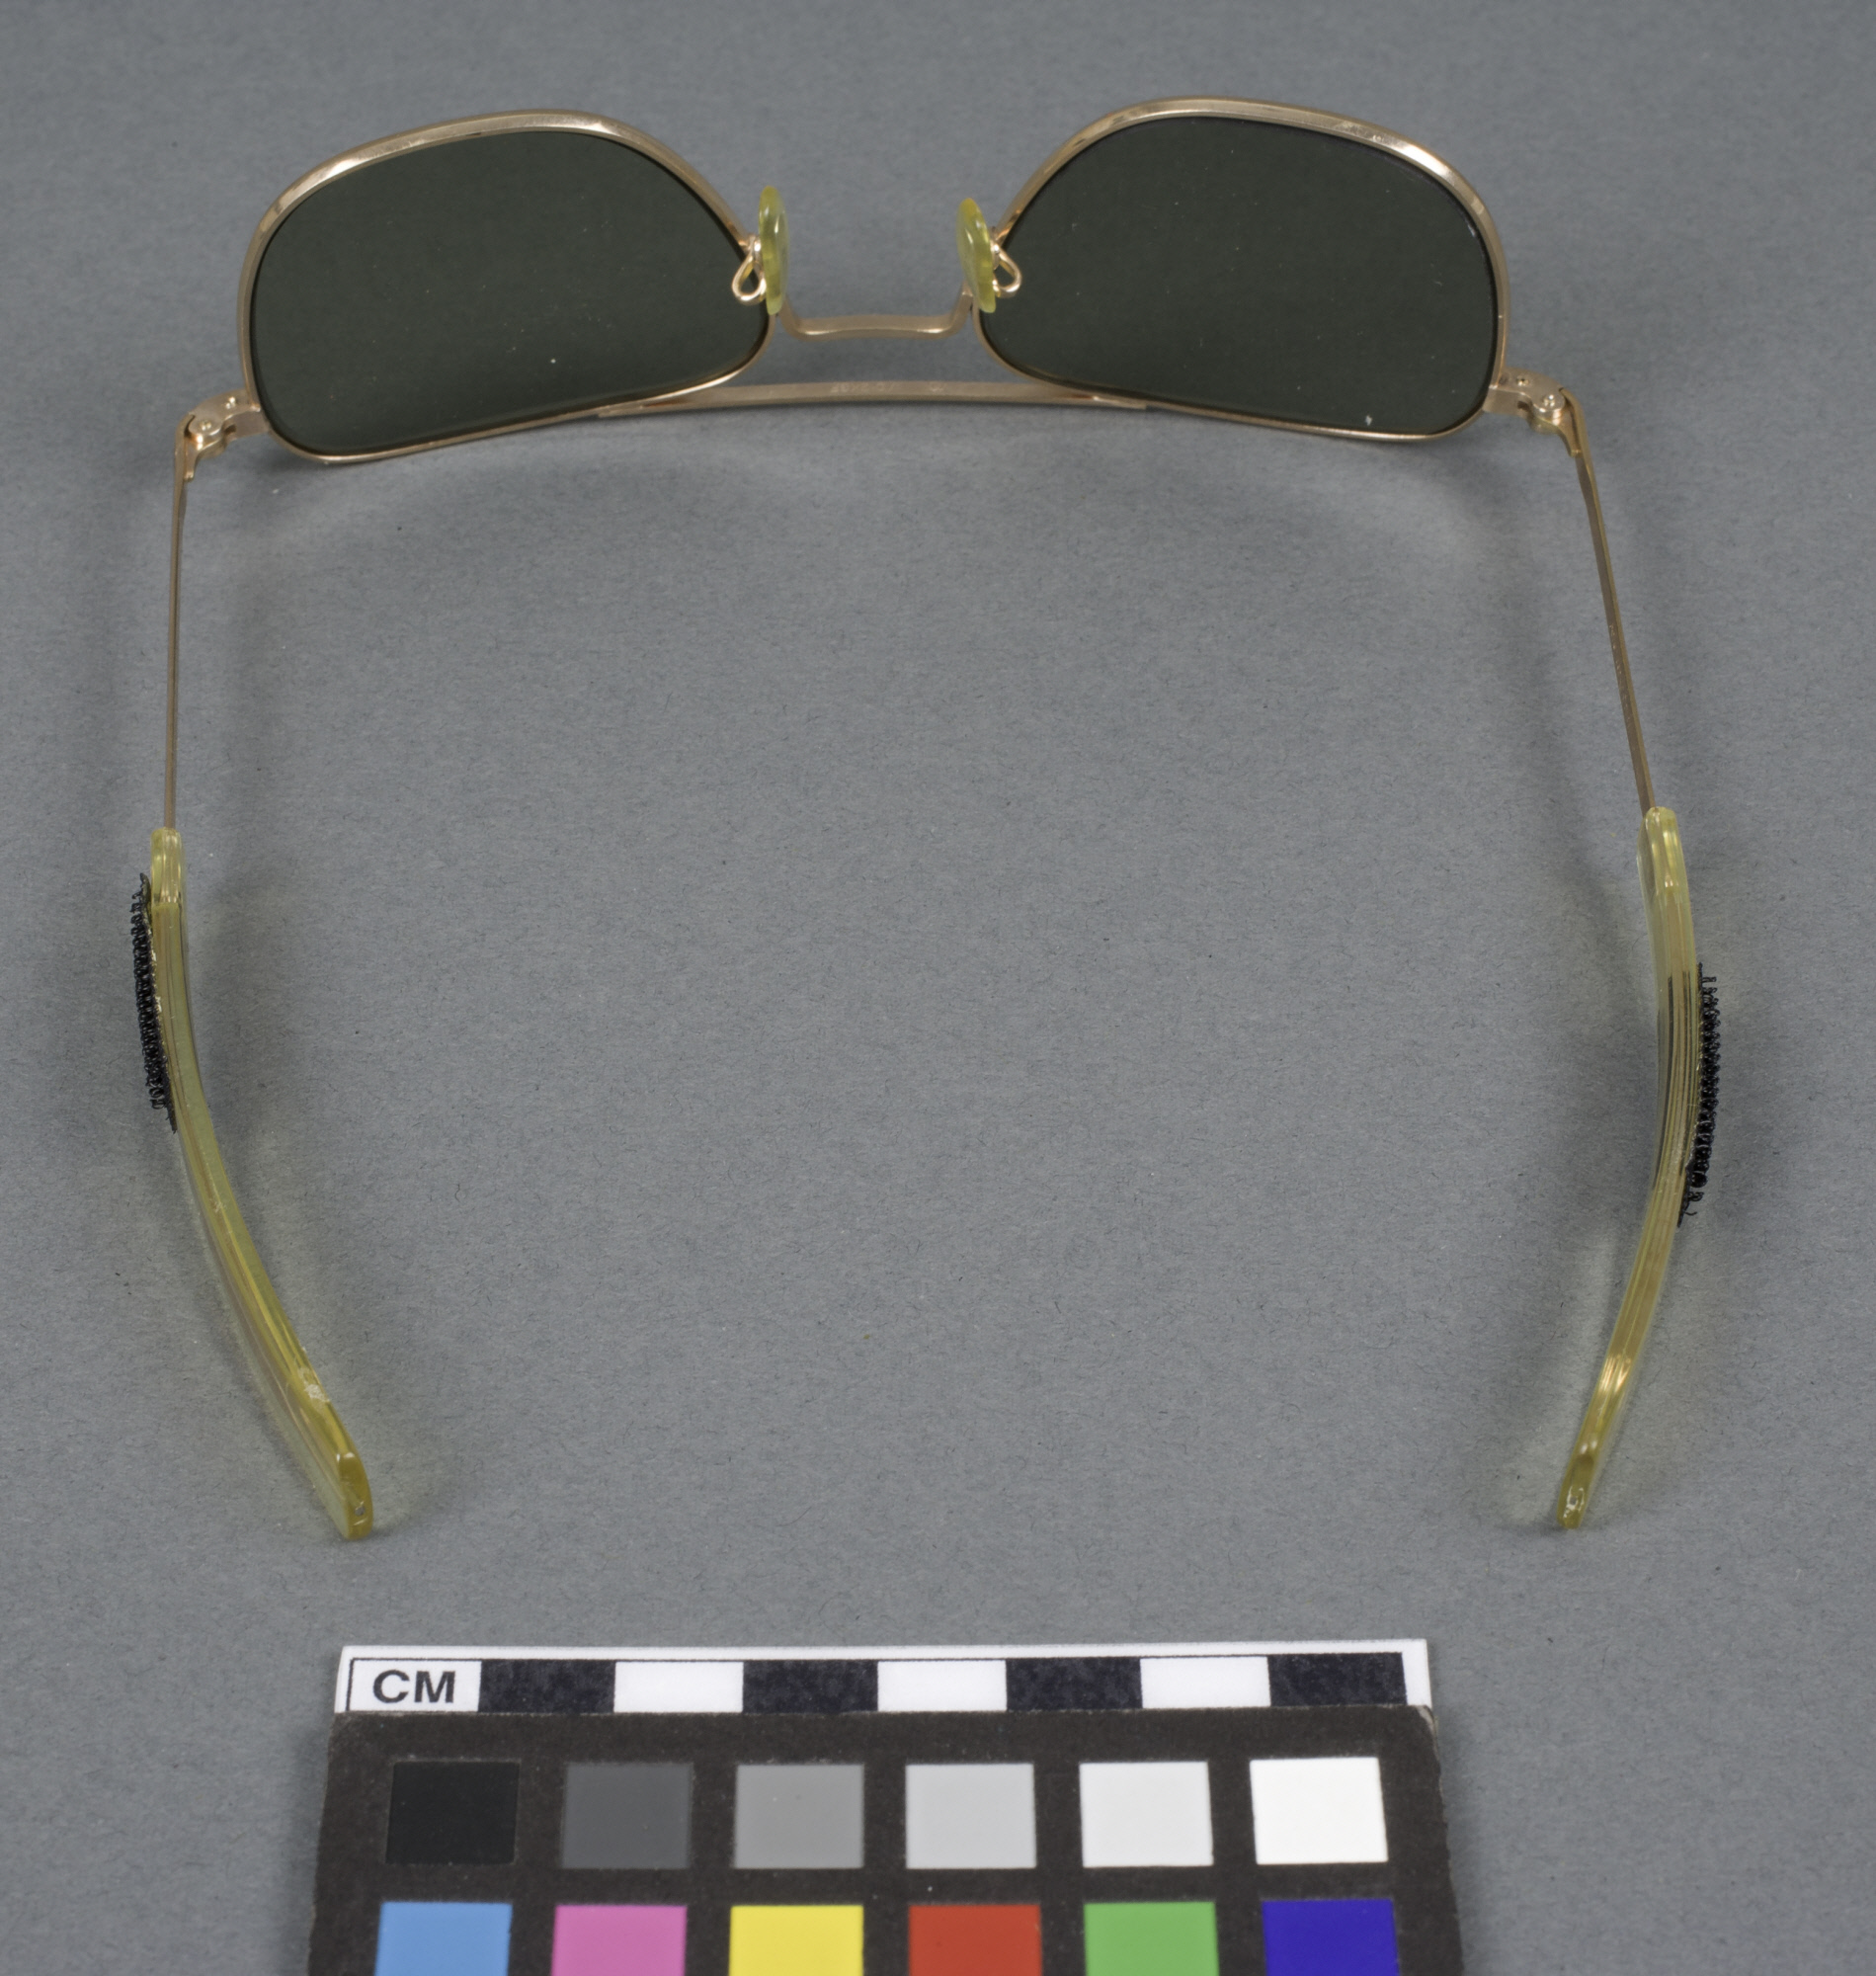 apollo astronaut glasses - photo #43